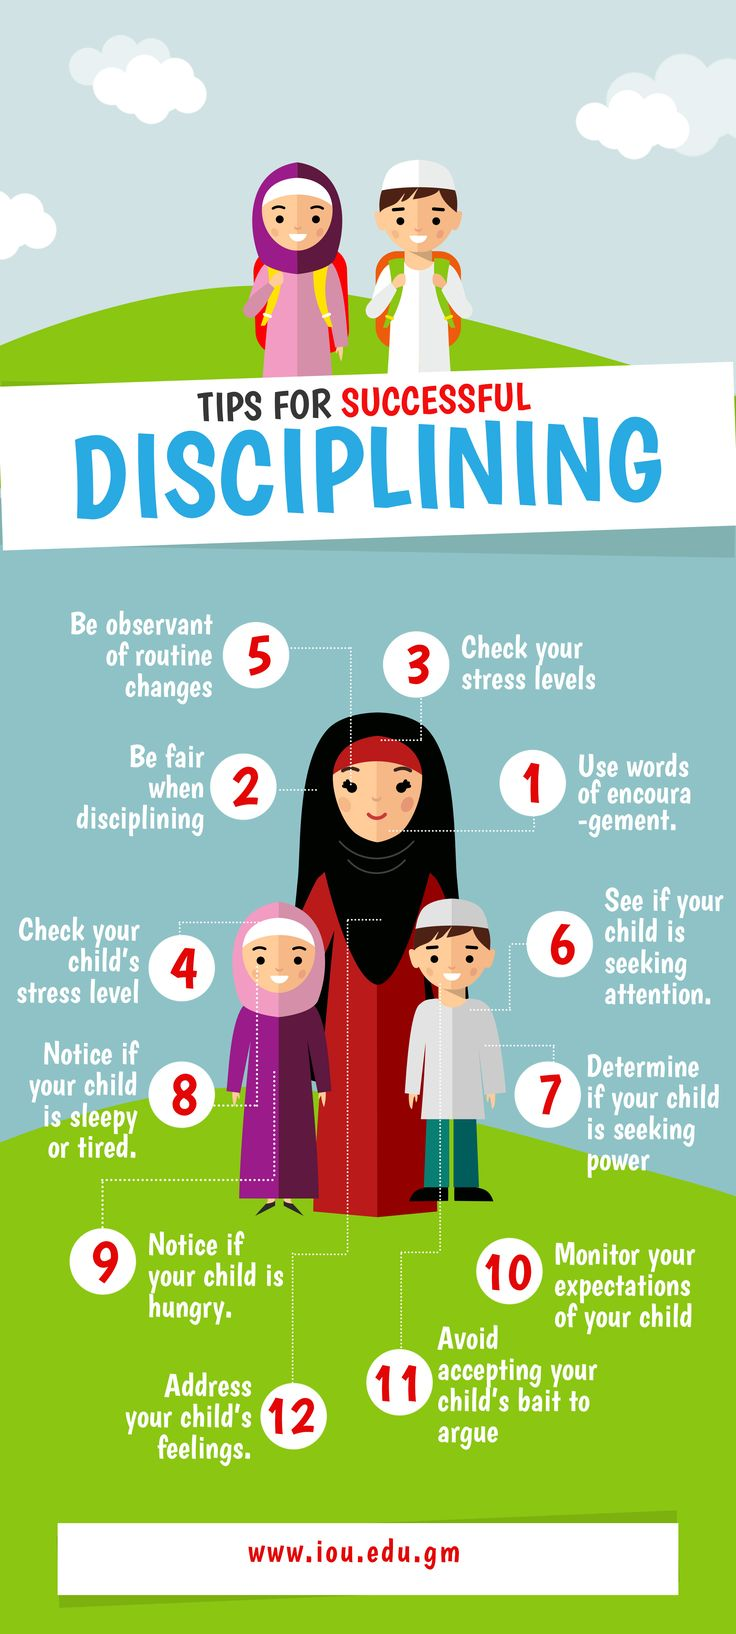 child discipline Disciplining your child is not easy, but it is a vital part of good parenting the aap recommends a three-step approach toward effective child discipline.